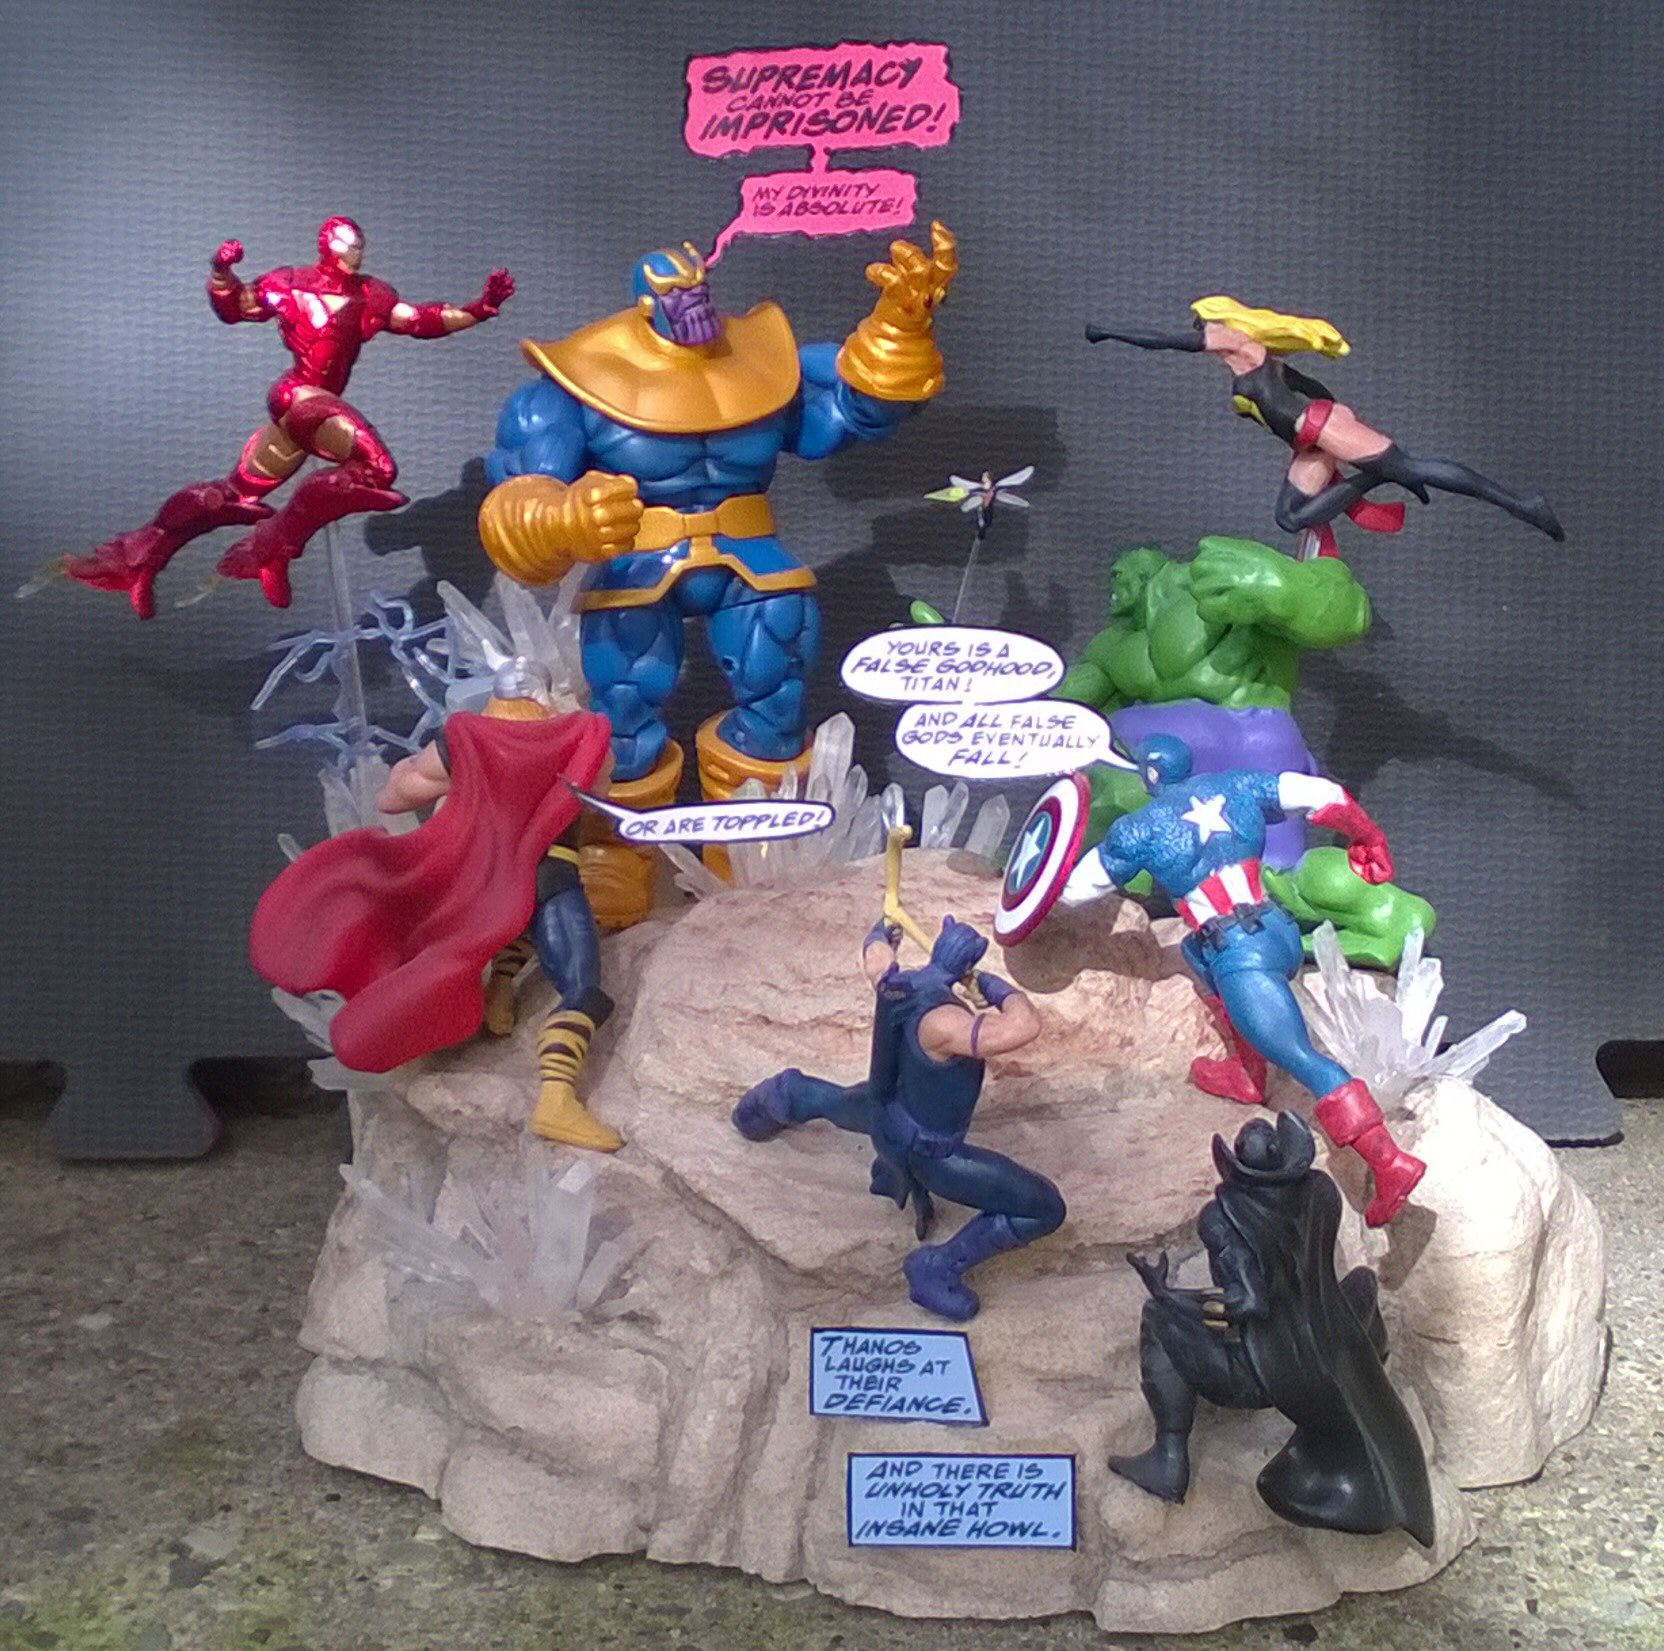 Thanos and the Infinity Gauntlet versus the Avengers diorama made